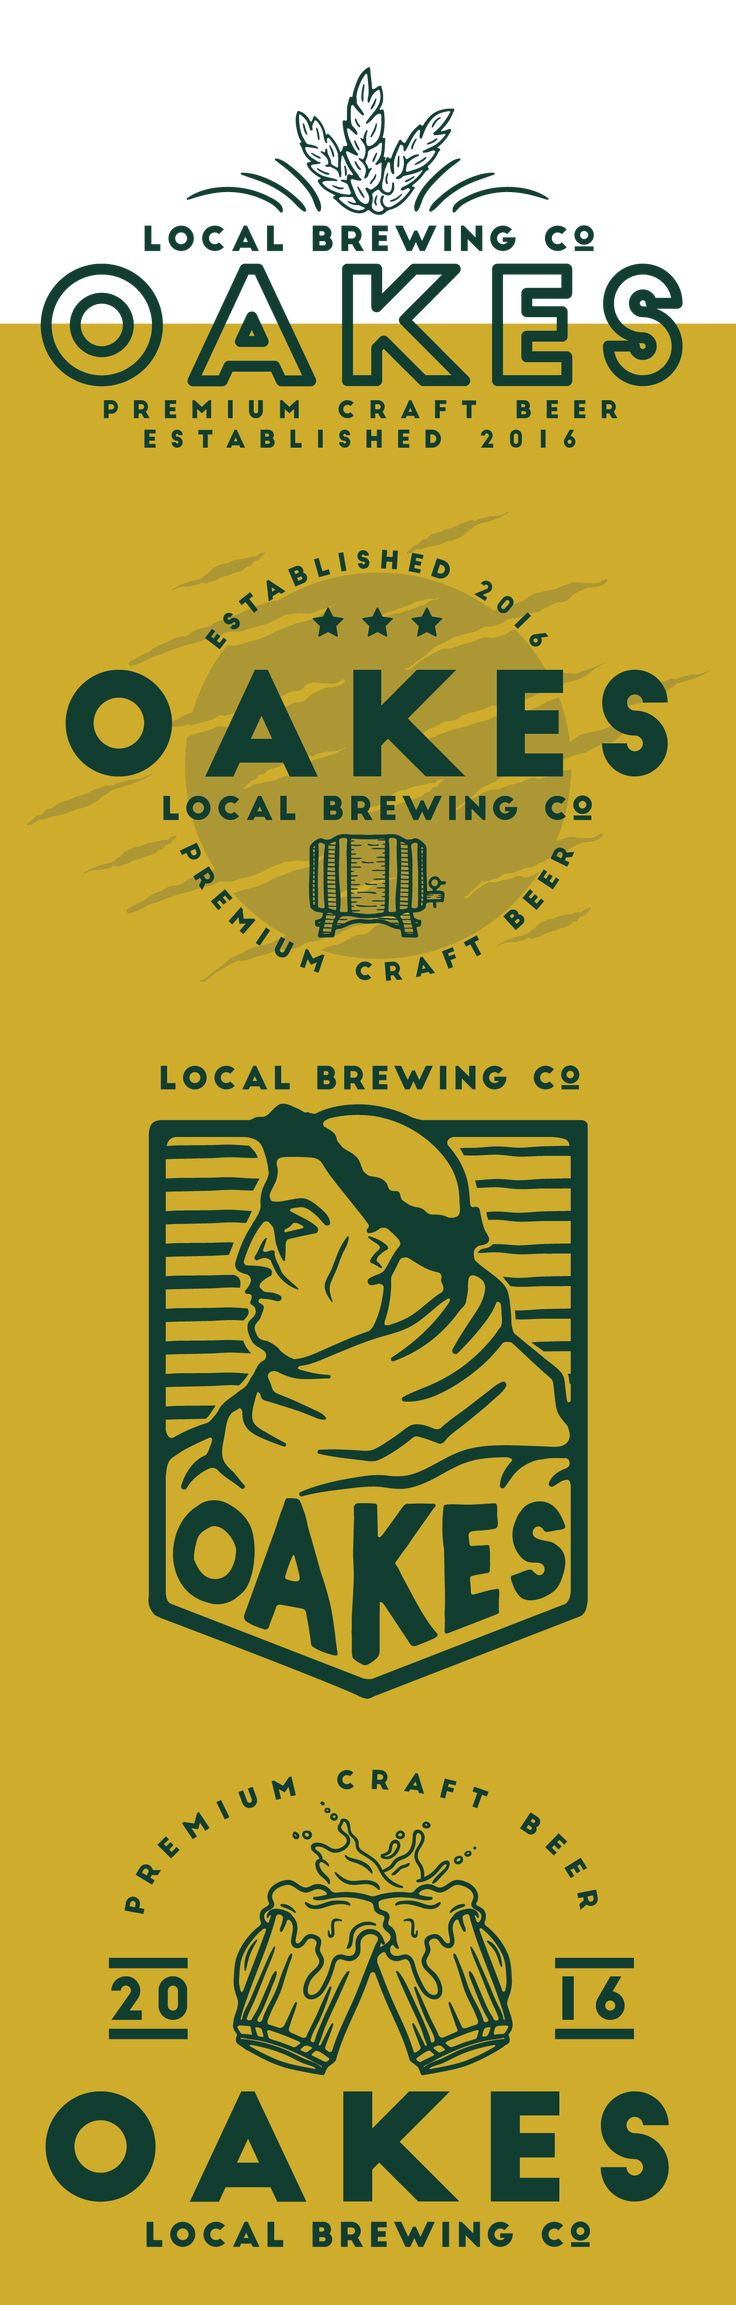 Branding work for Oakes Brewing Co.